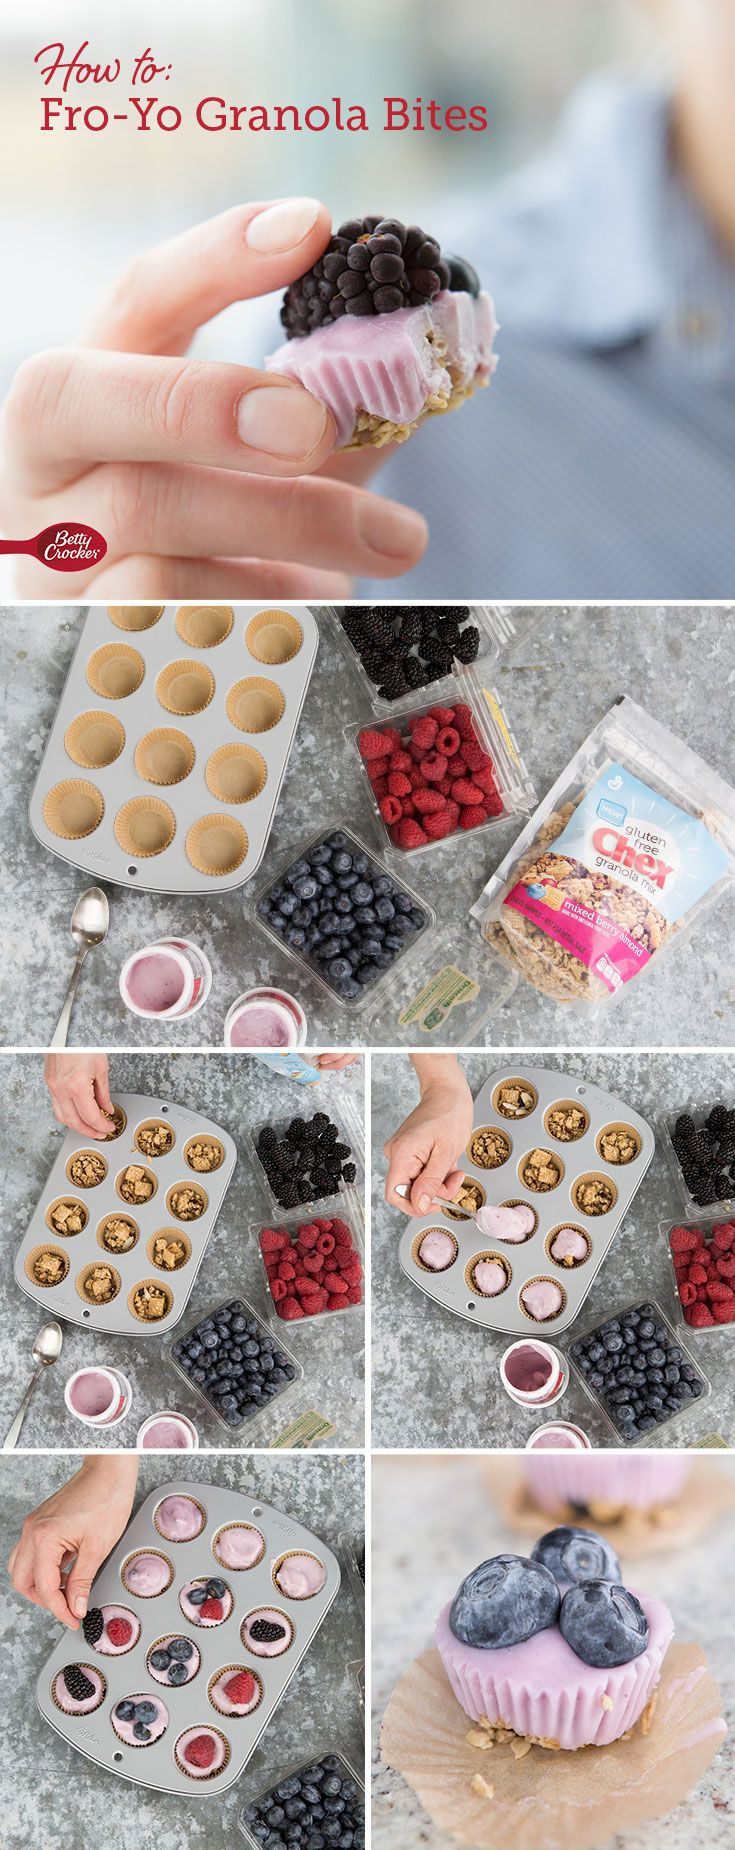 Protein-packed, portable and infinitely pop-able | healthy recipe ideas @xhealthyrecipex |